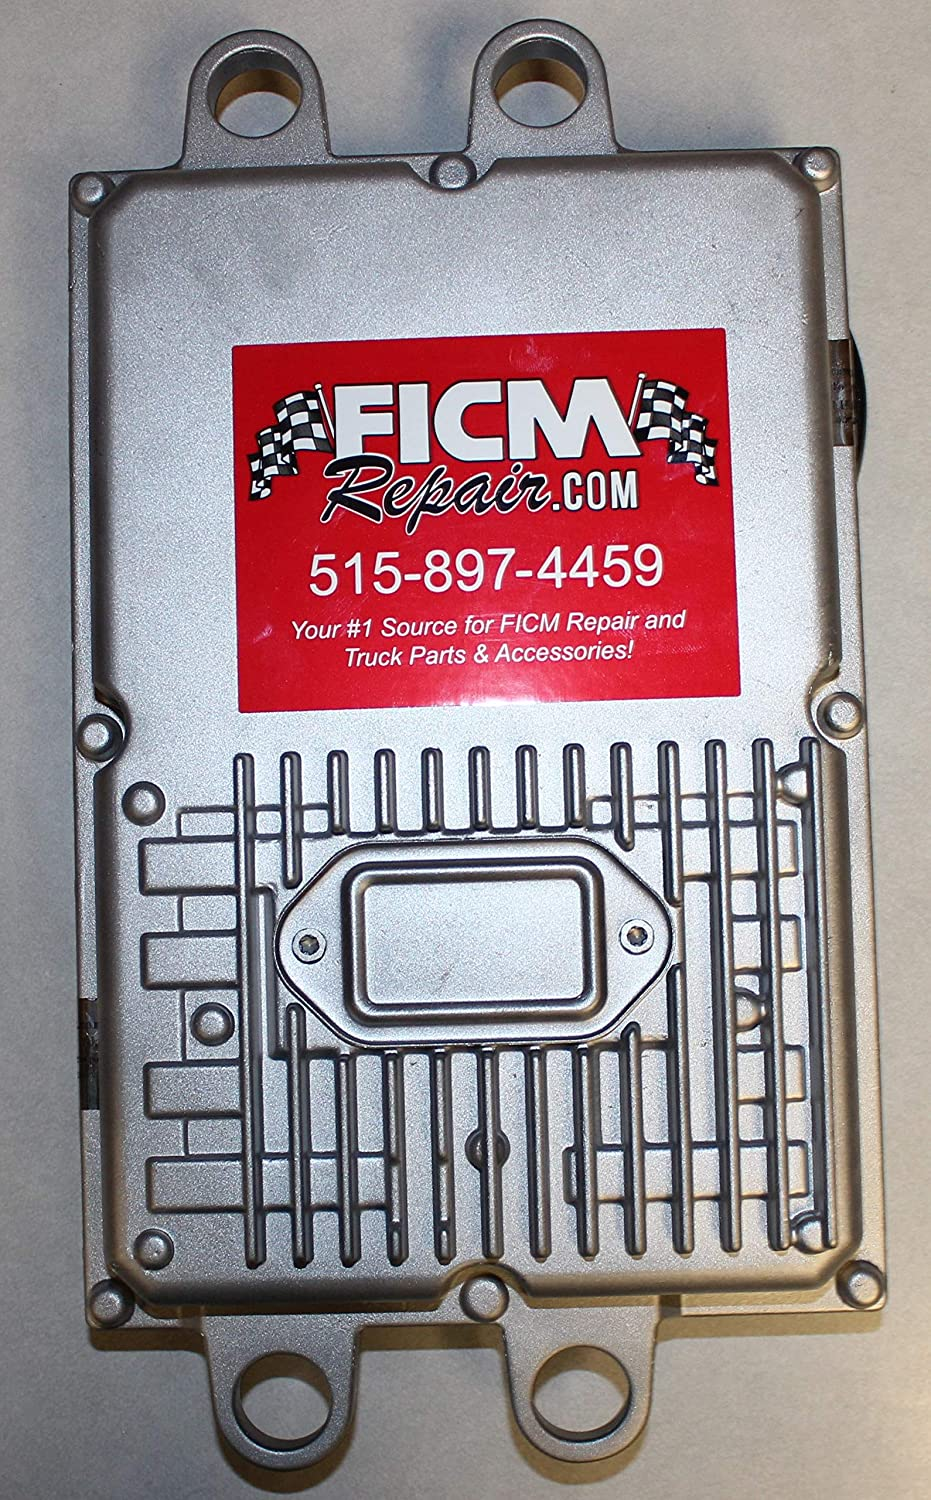 FICMRepair $100 refund for core return, see details Basic Service Remanufactured FICM w//OEM Software for 2003 to early 2004 6.0L Powerstroke Diesel Trucks including 1yr Warranty.